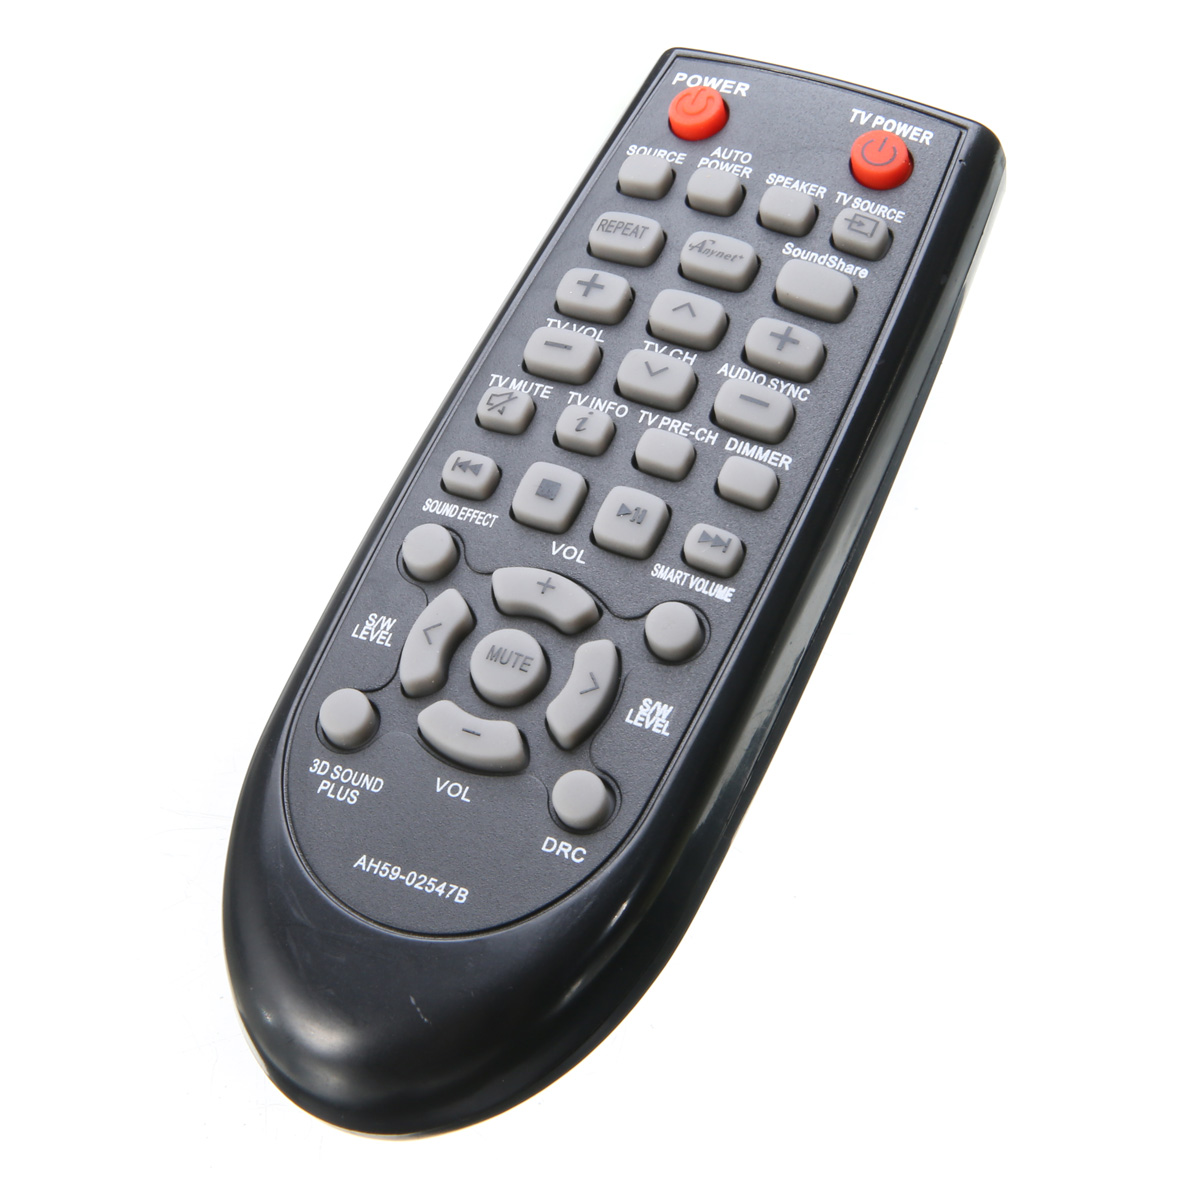 AH59 02547B Replacement Remote Control for Samsung Sound Bar